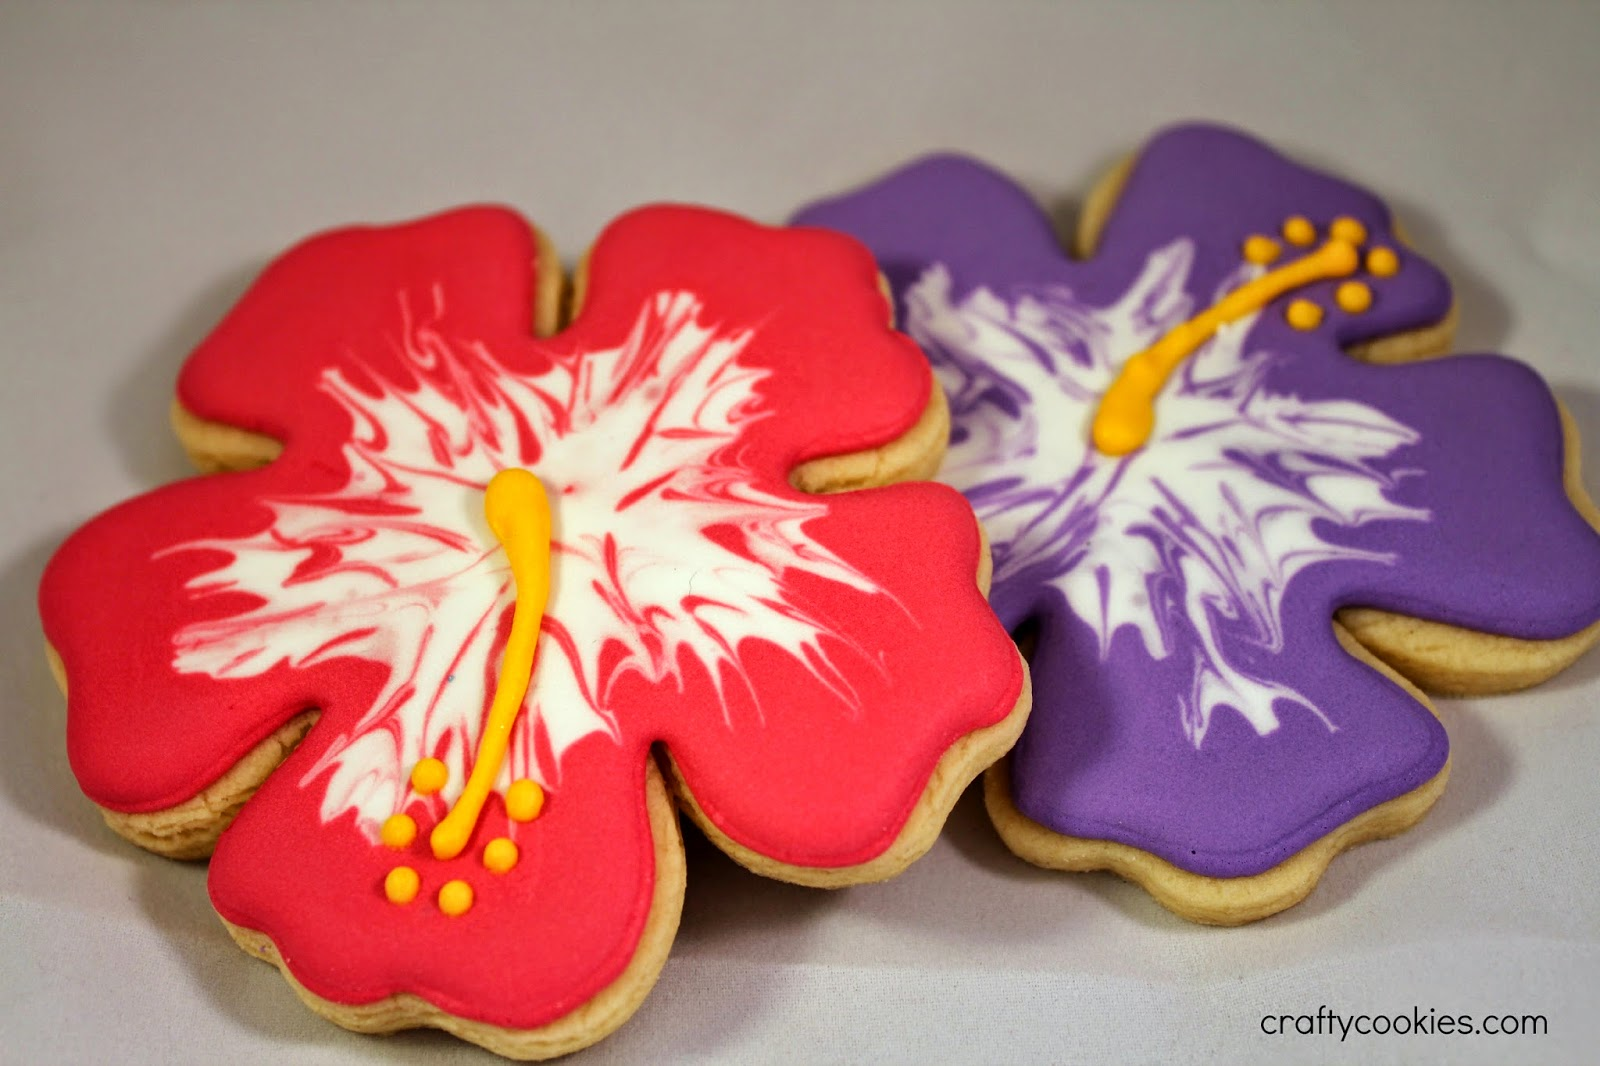 Crafty cookies easy hibiscus flower cookies but you can purchase a standard hibiscus cutter or use a large shamrock cookie cutter instead i outlined and flooded the cookies with the desired color izmirmasajfo